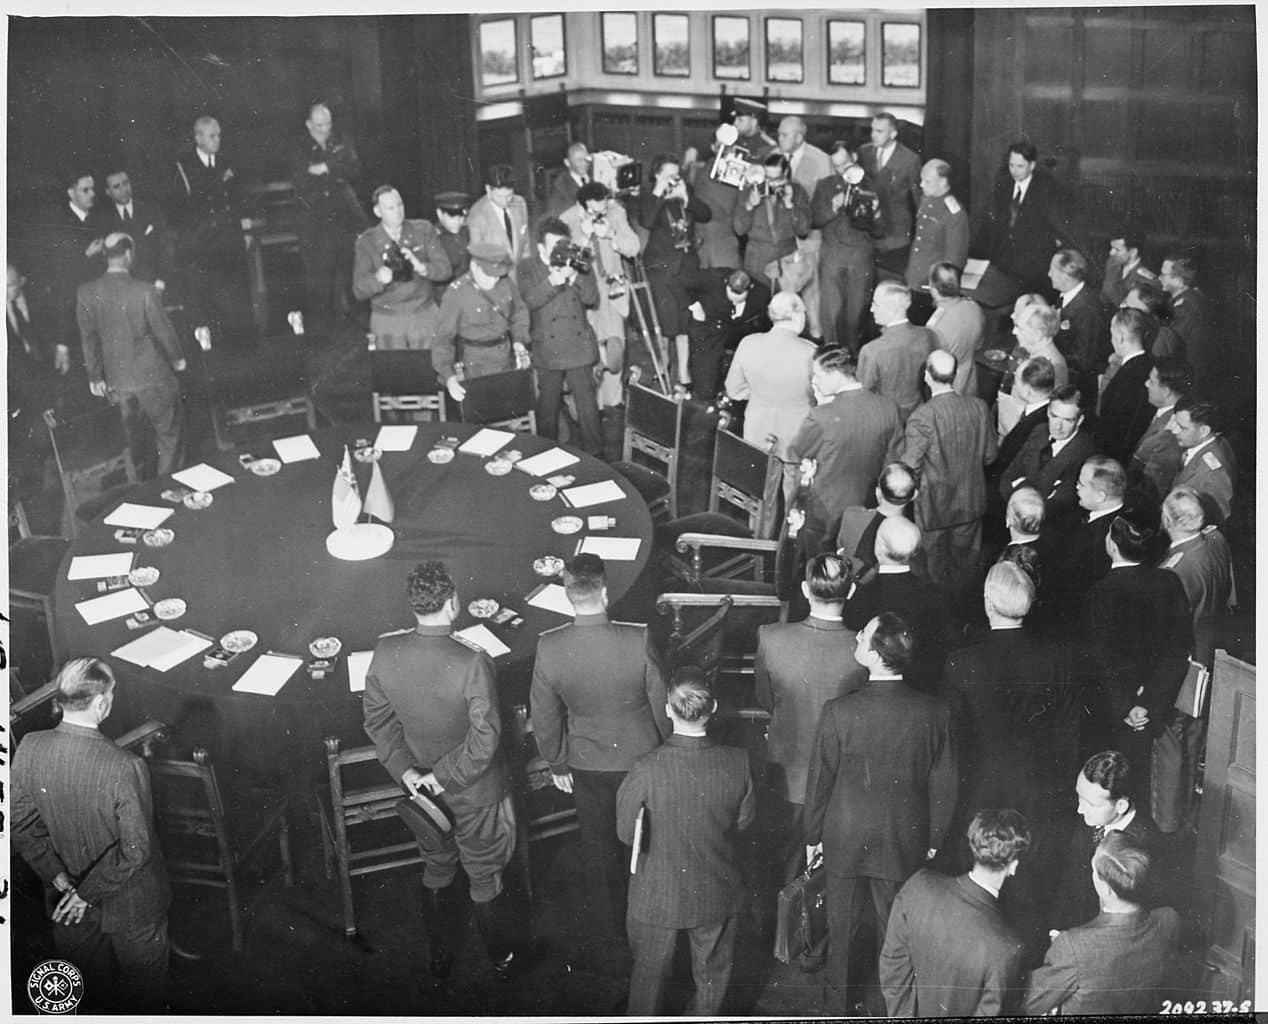 The Potsdam Conference - July 17th 1945 - The Big Three start the Potsdam conference on July 17th 1945